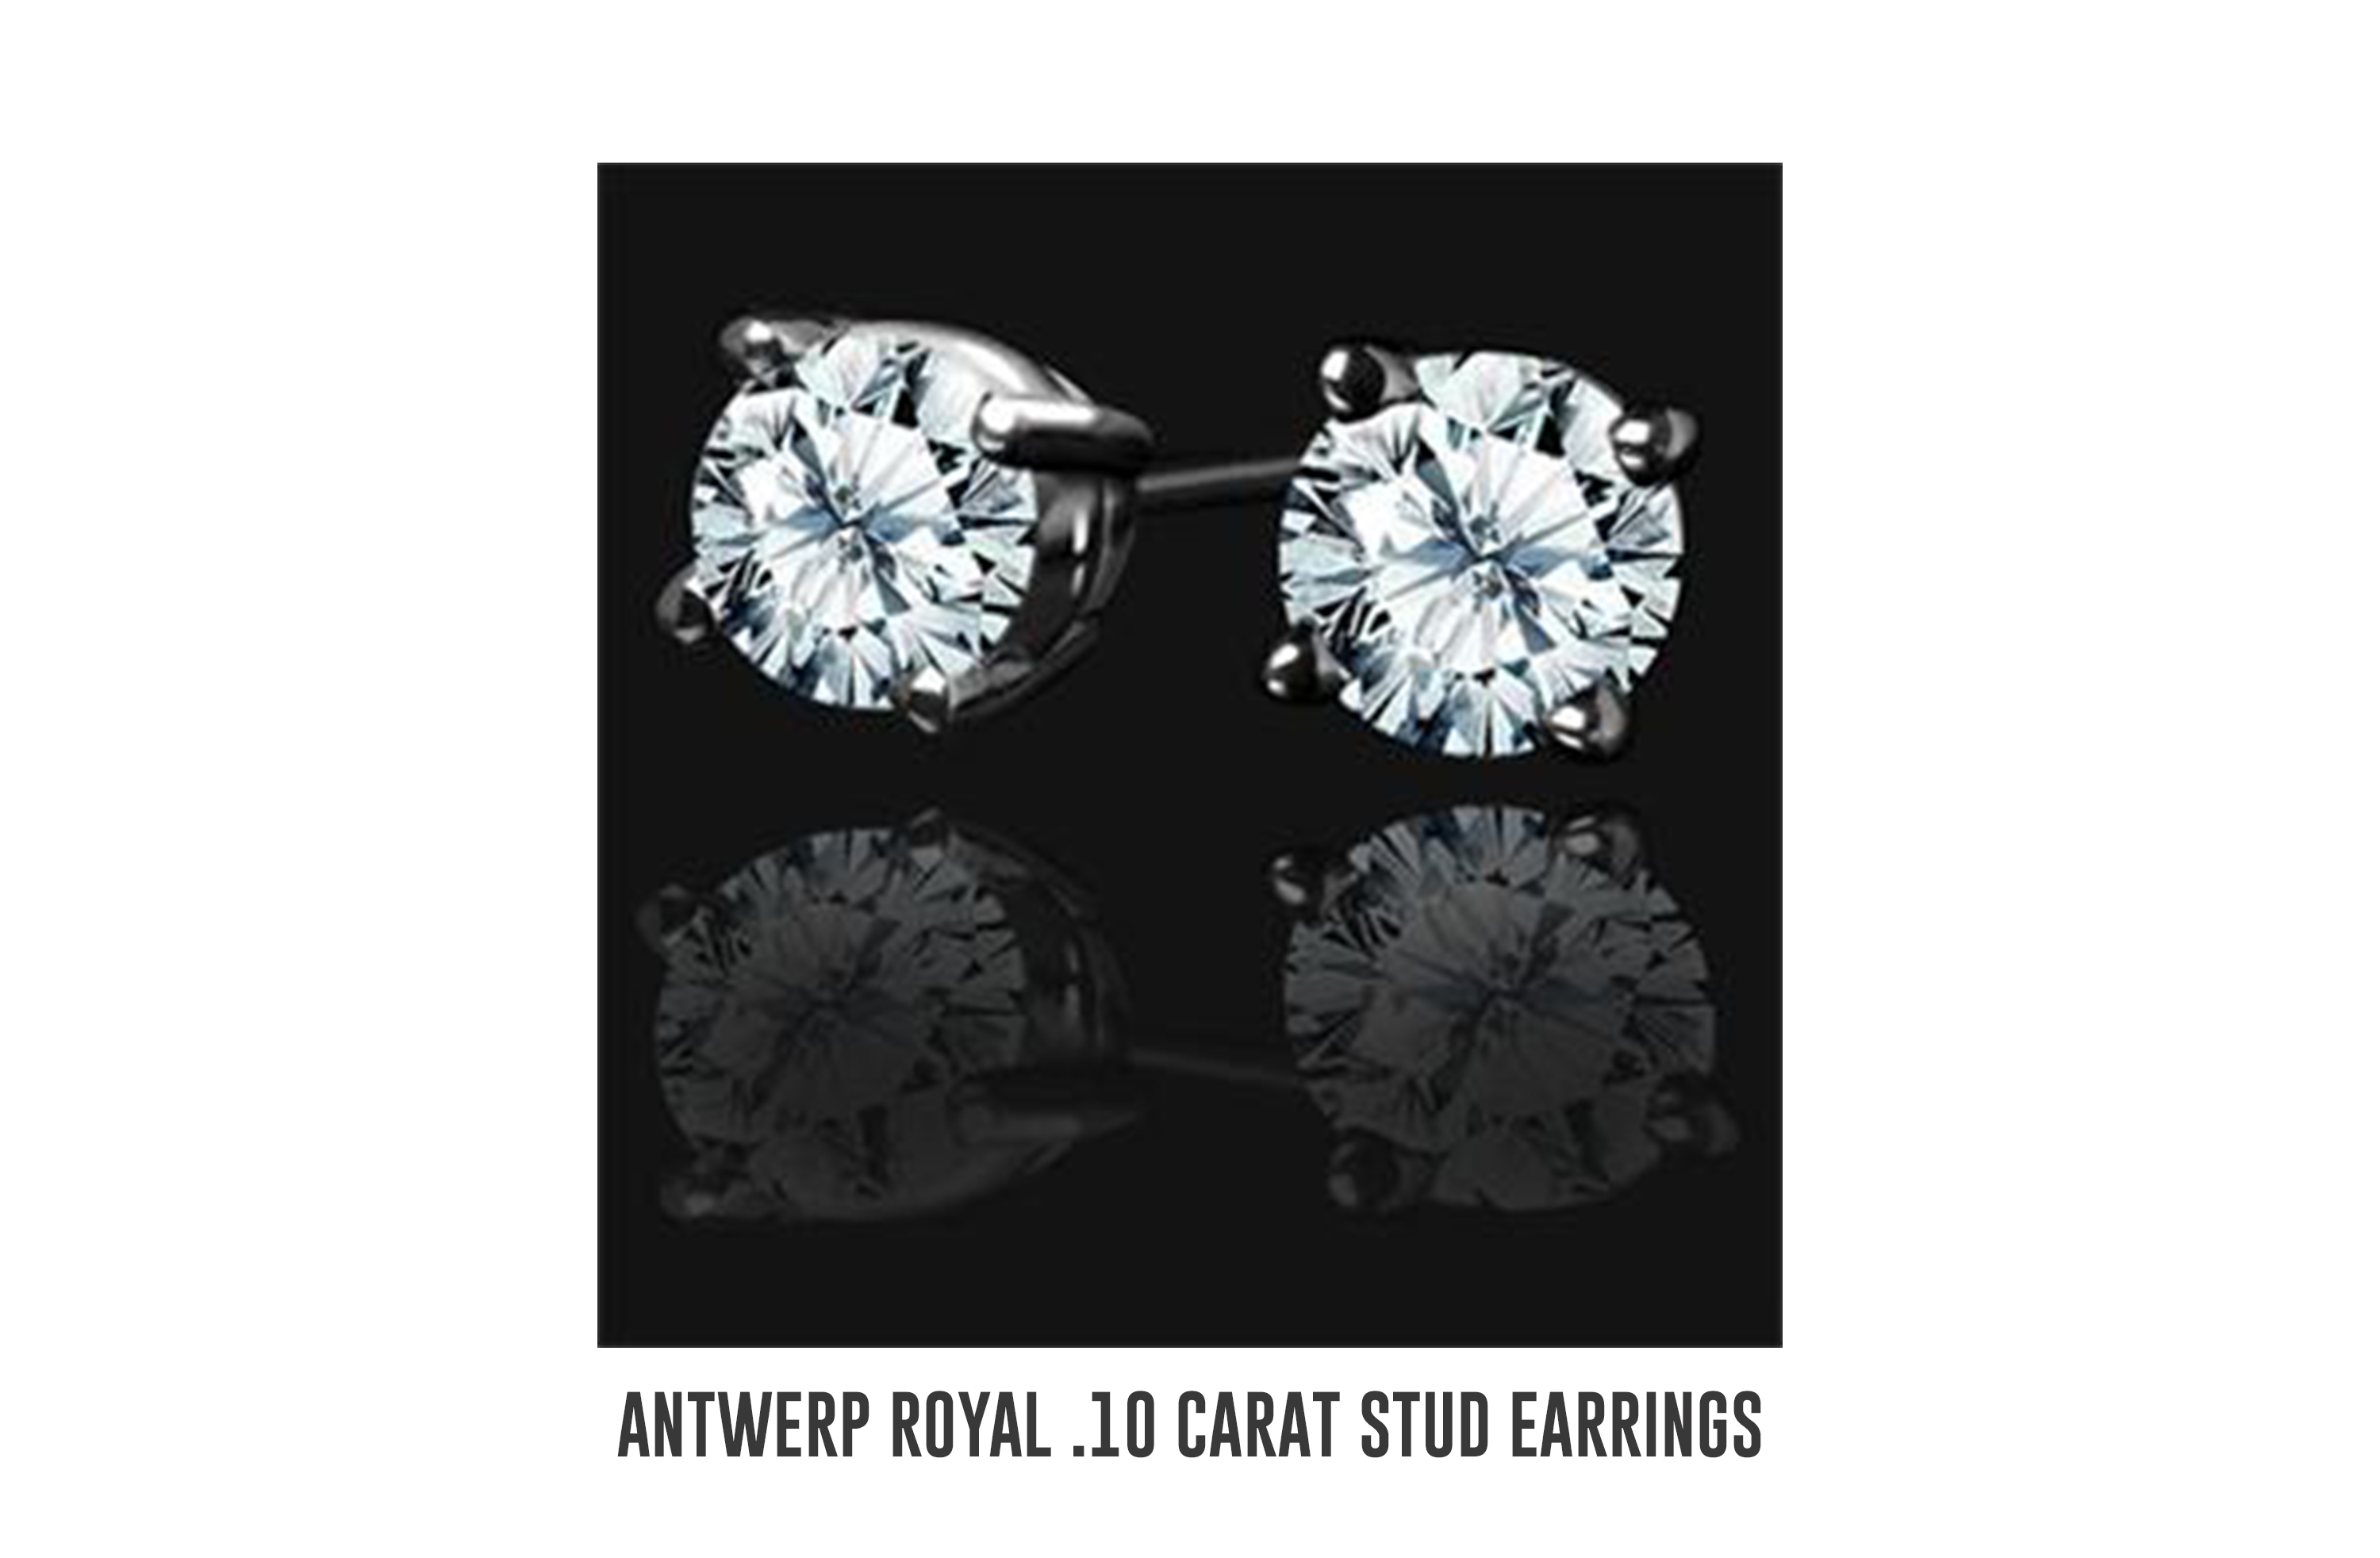 Antwerp Royal .10 carat stud earrings